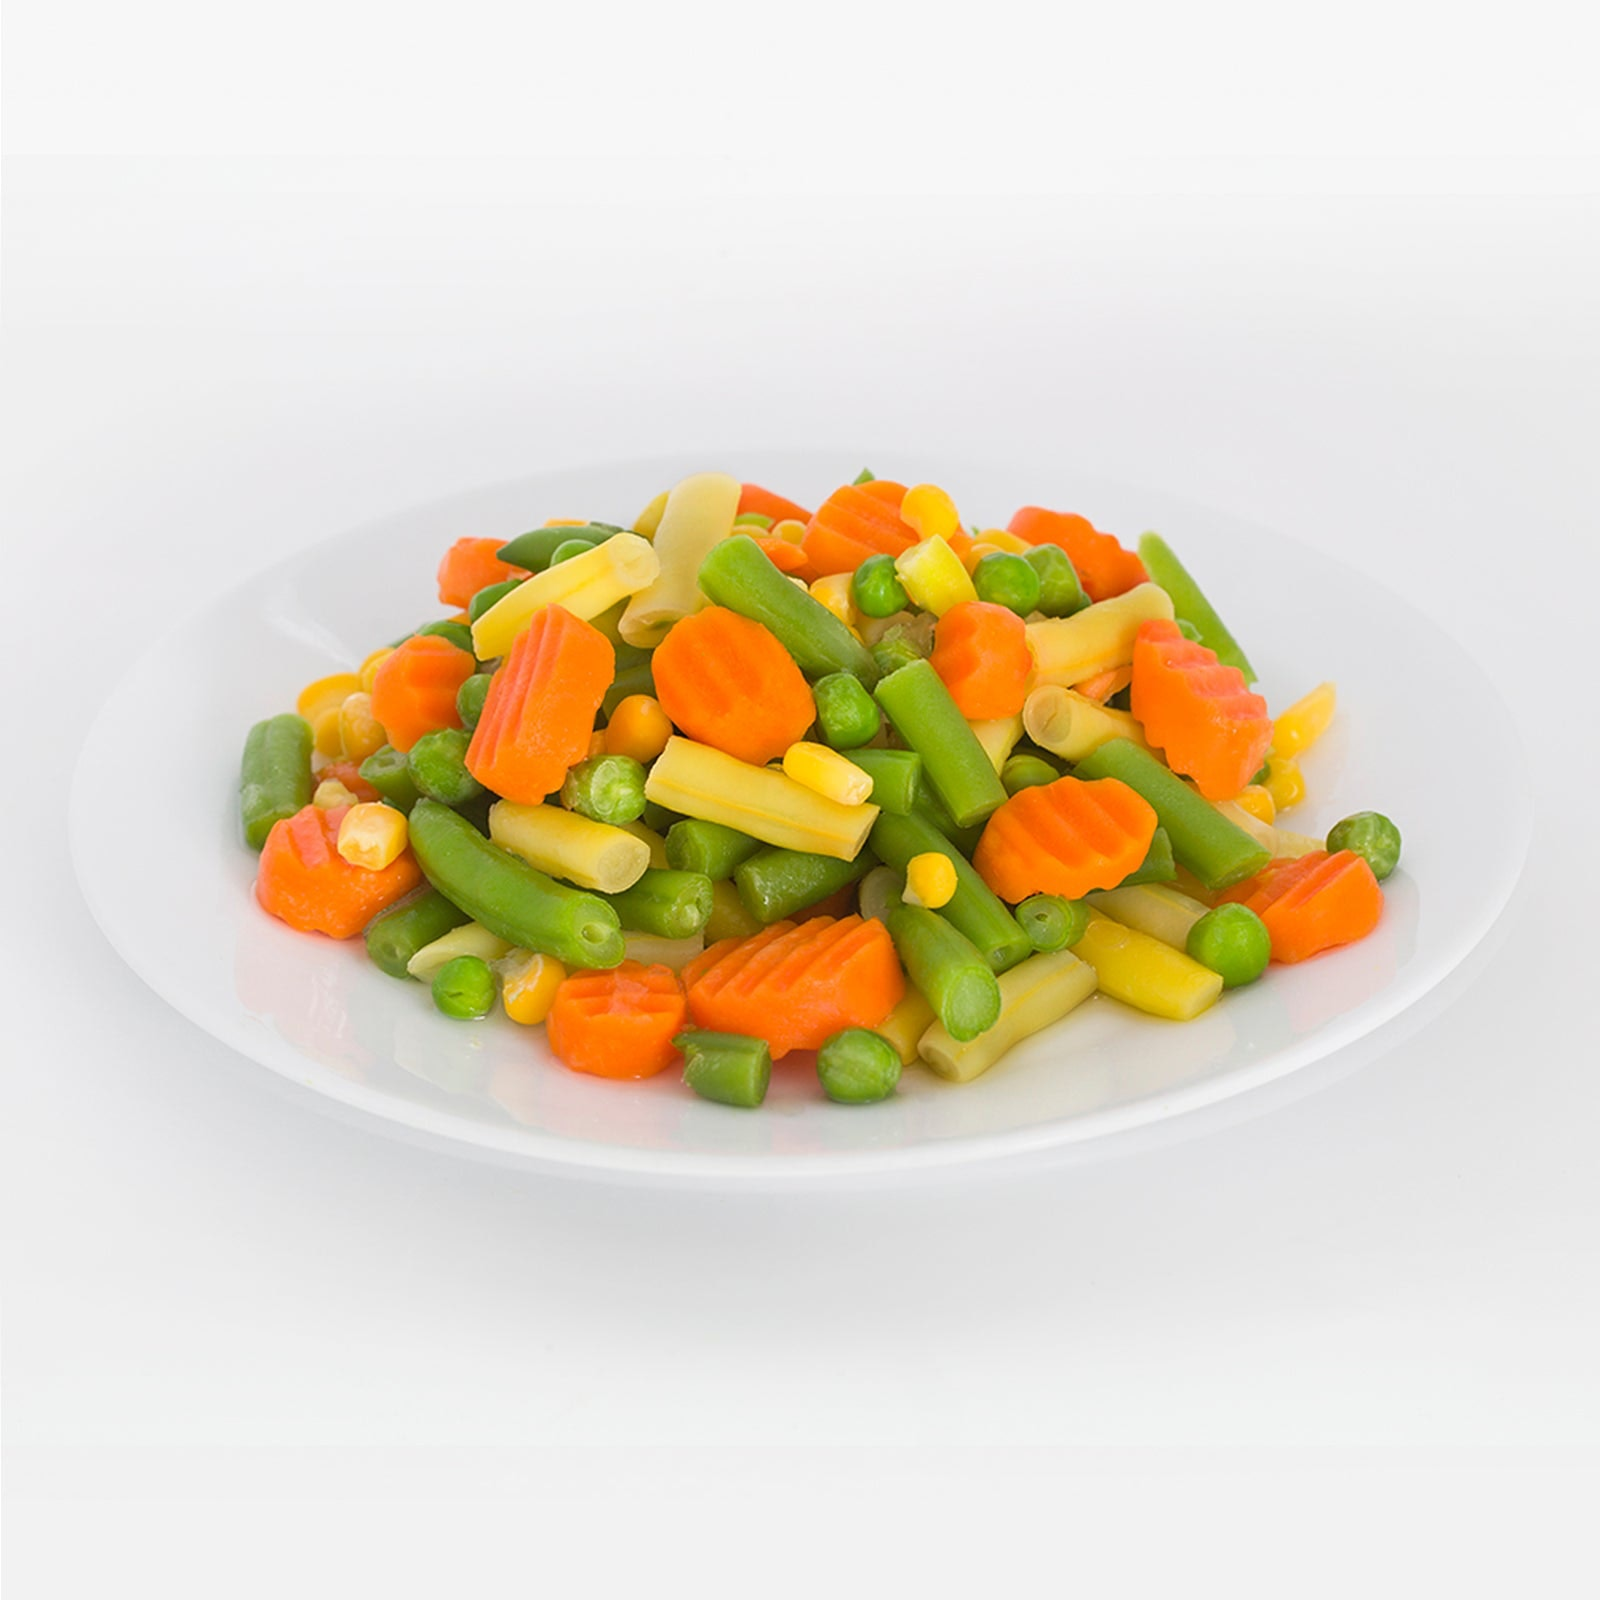 BELOW ZERO 5 way mixed vegetables